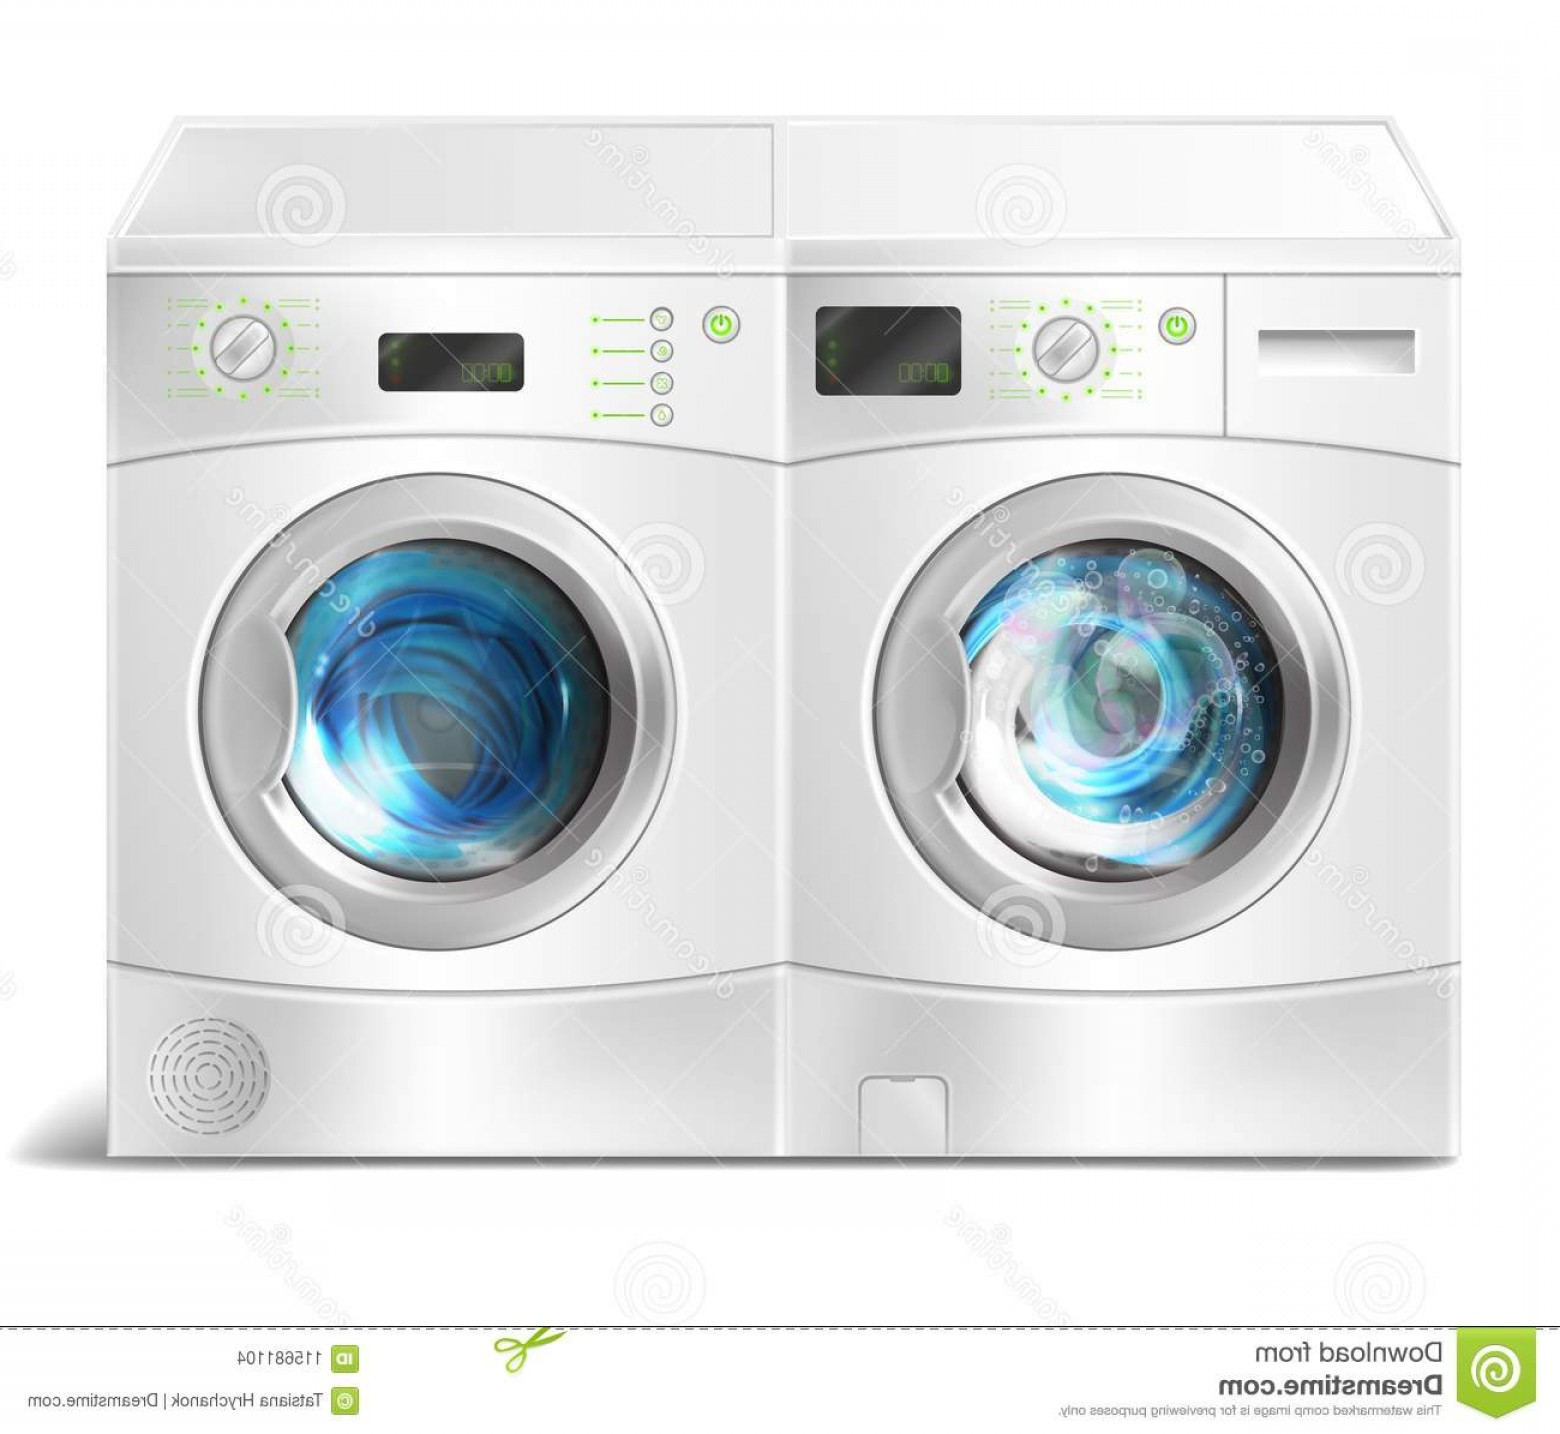 Washer and dryer clipart vector download Vector Washer Dryer Laundry Inside Realistic Illustration ... vector download